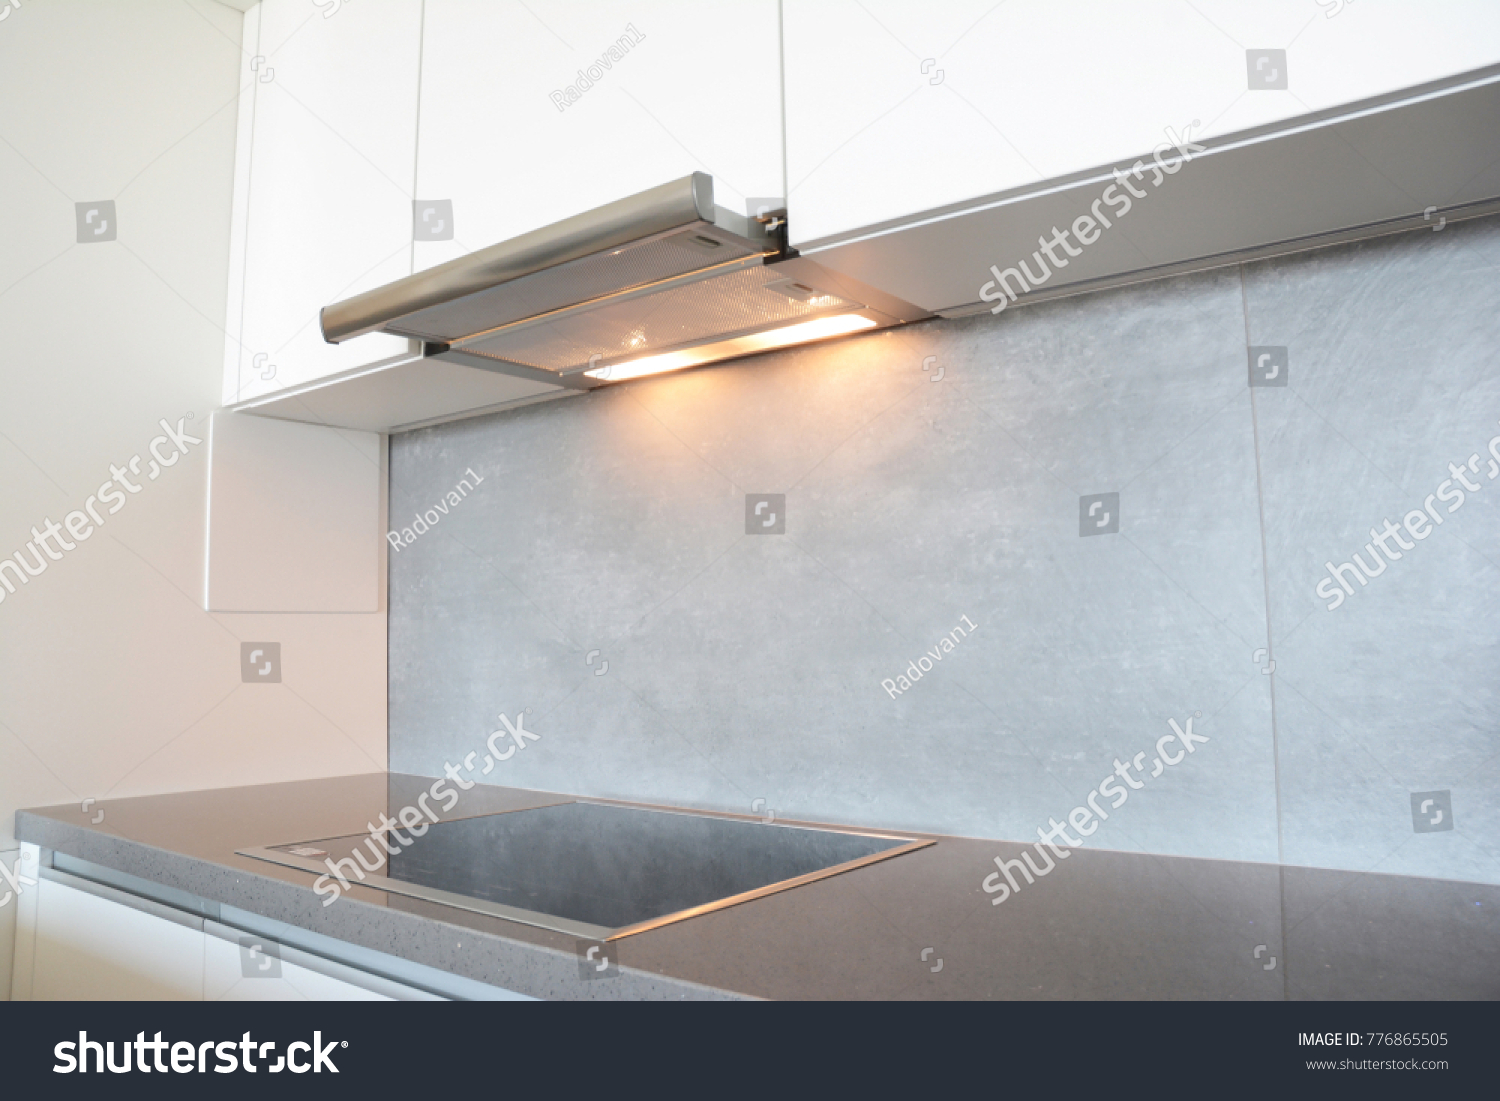 Close On Modern Air Exhauster Kitchen Stock Photo (Edit Now ...